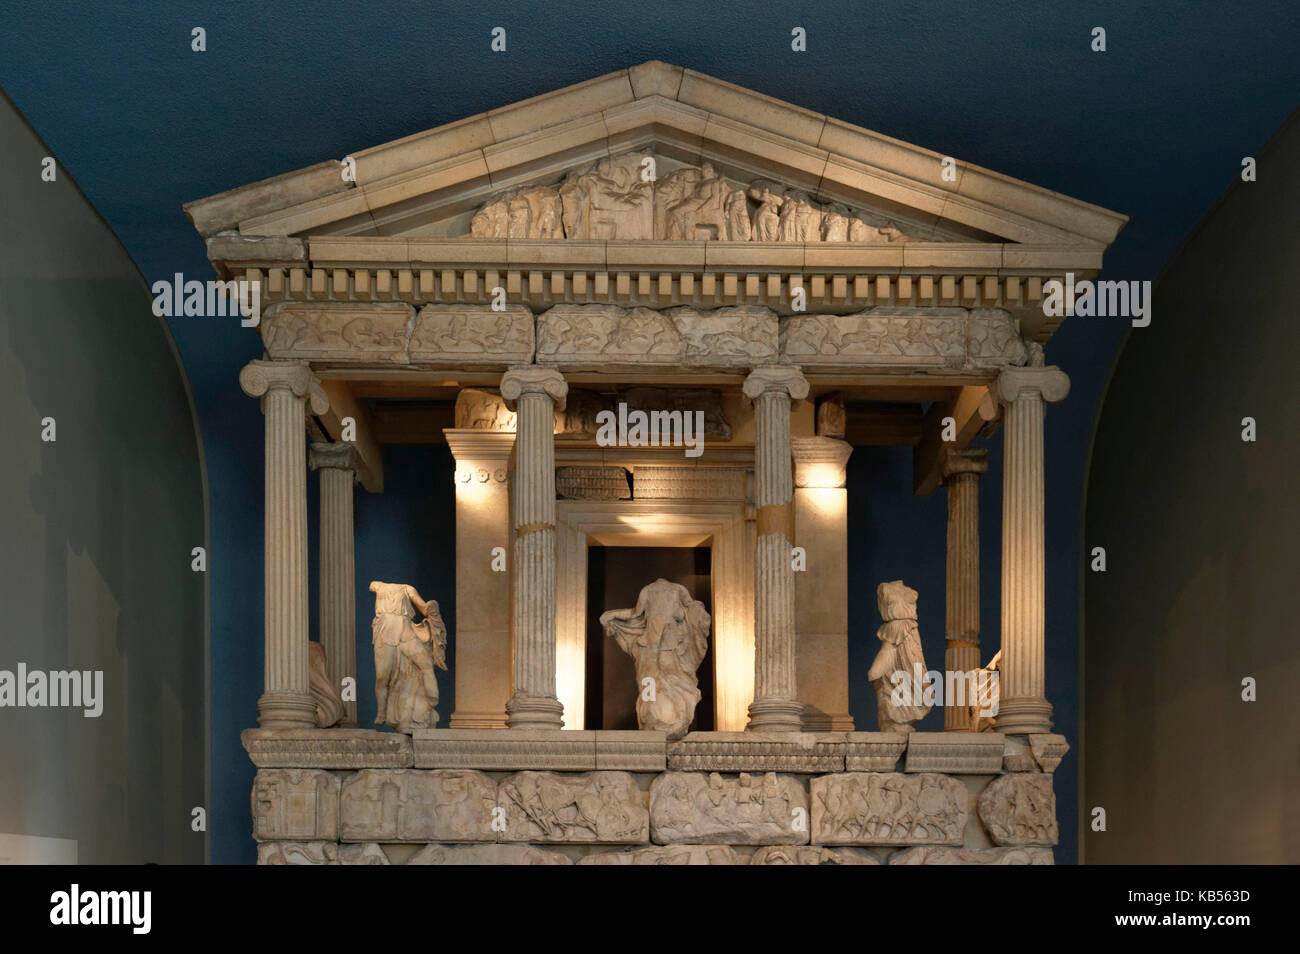 United Kingdom, London, Bloomsbury, British Museum, The Nereid Monument from Xanthos in South West Turkey, 5th century - Stock Image